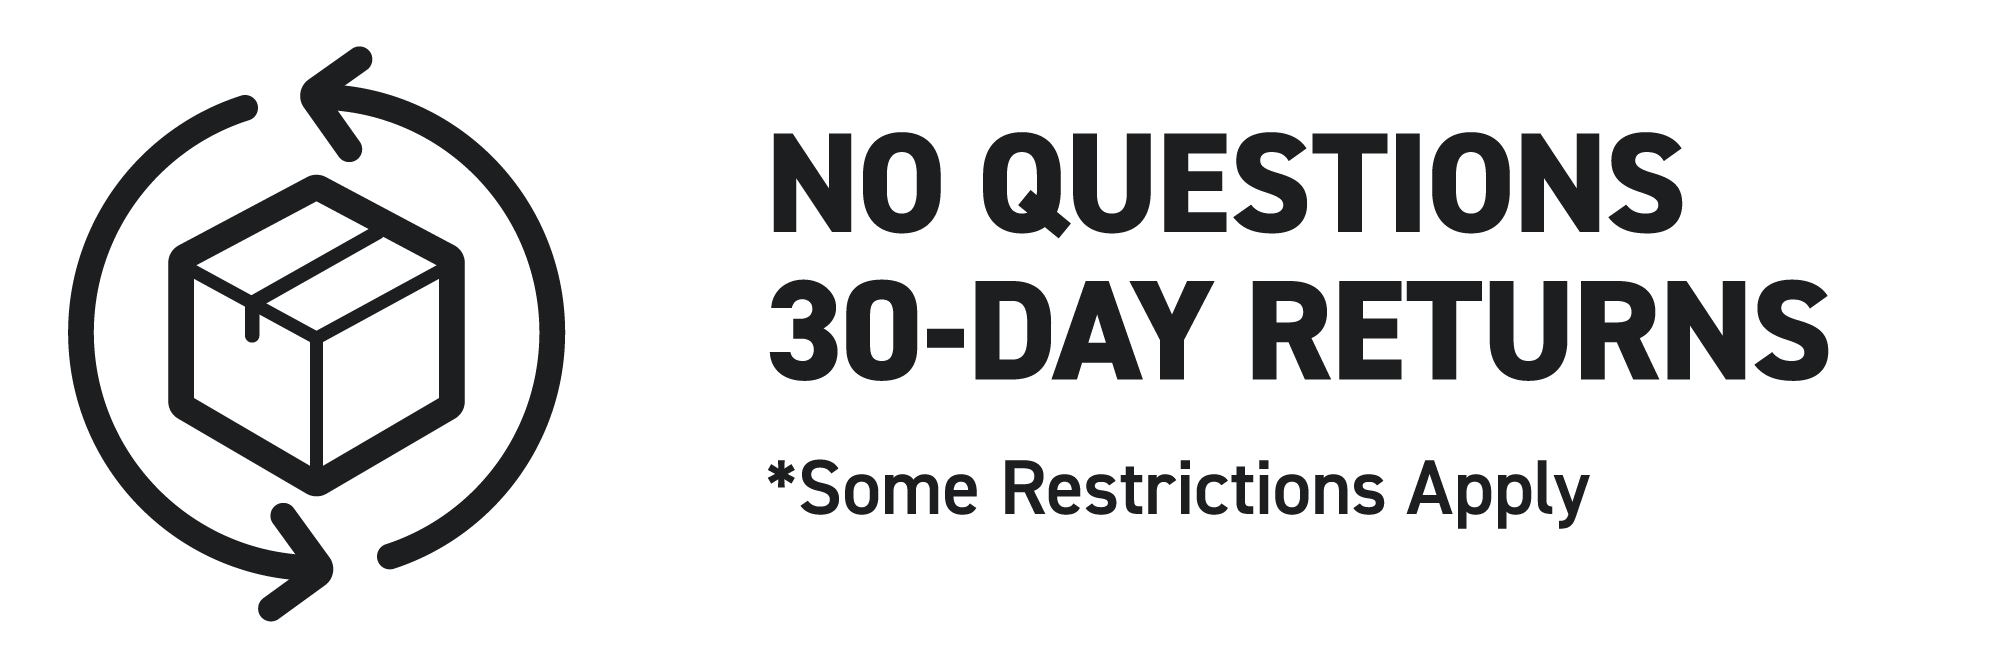 Get 30-Day Return with No question Asked for all products in resellable condition.